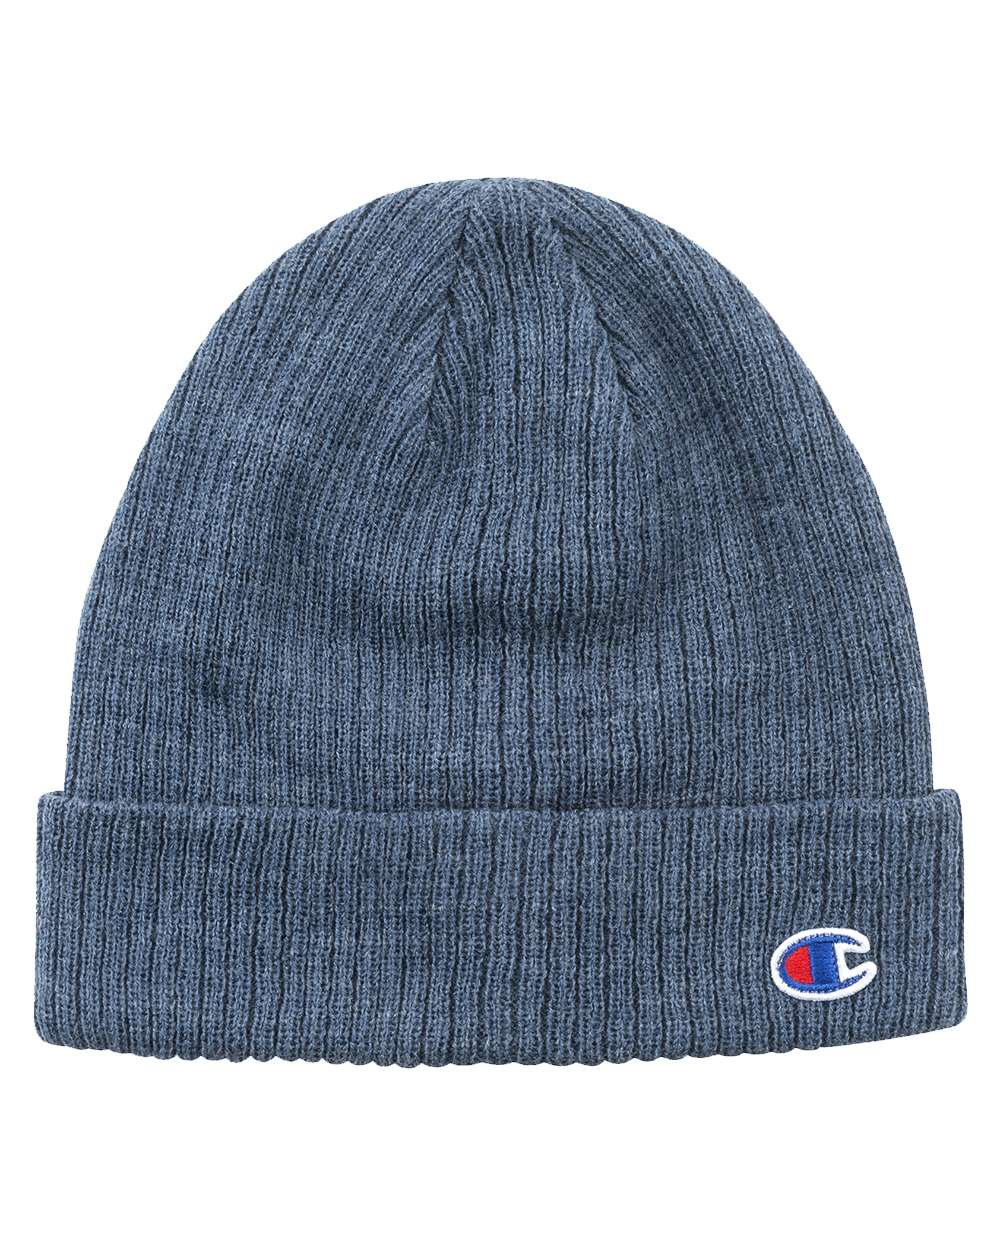 Champion CH2073HB - Limited Edition Transition 2.0 Cuff Beanie